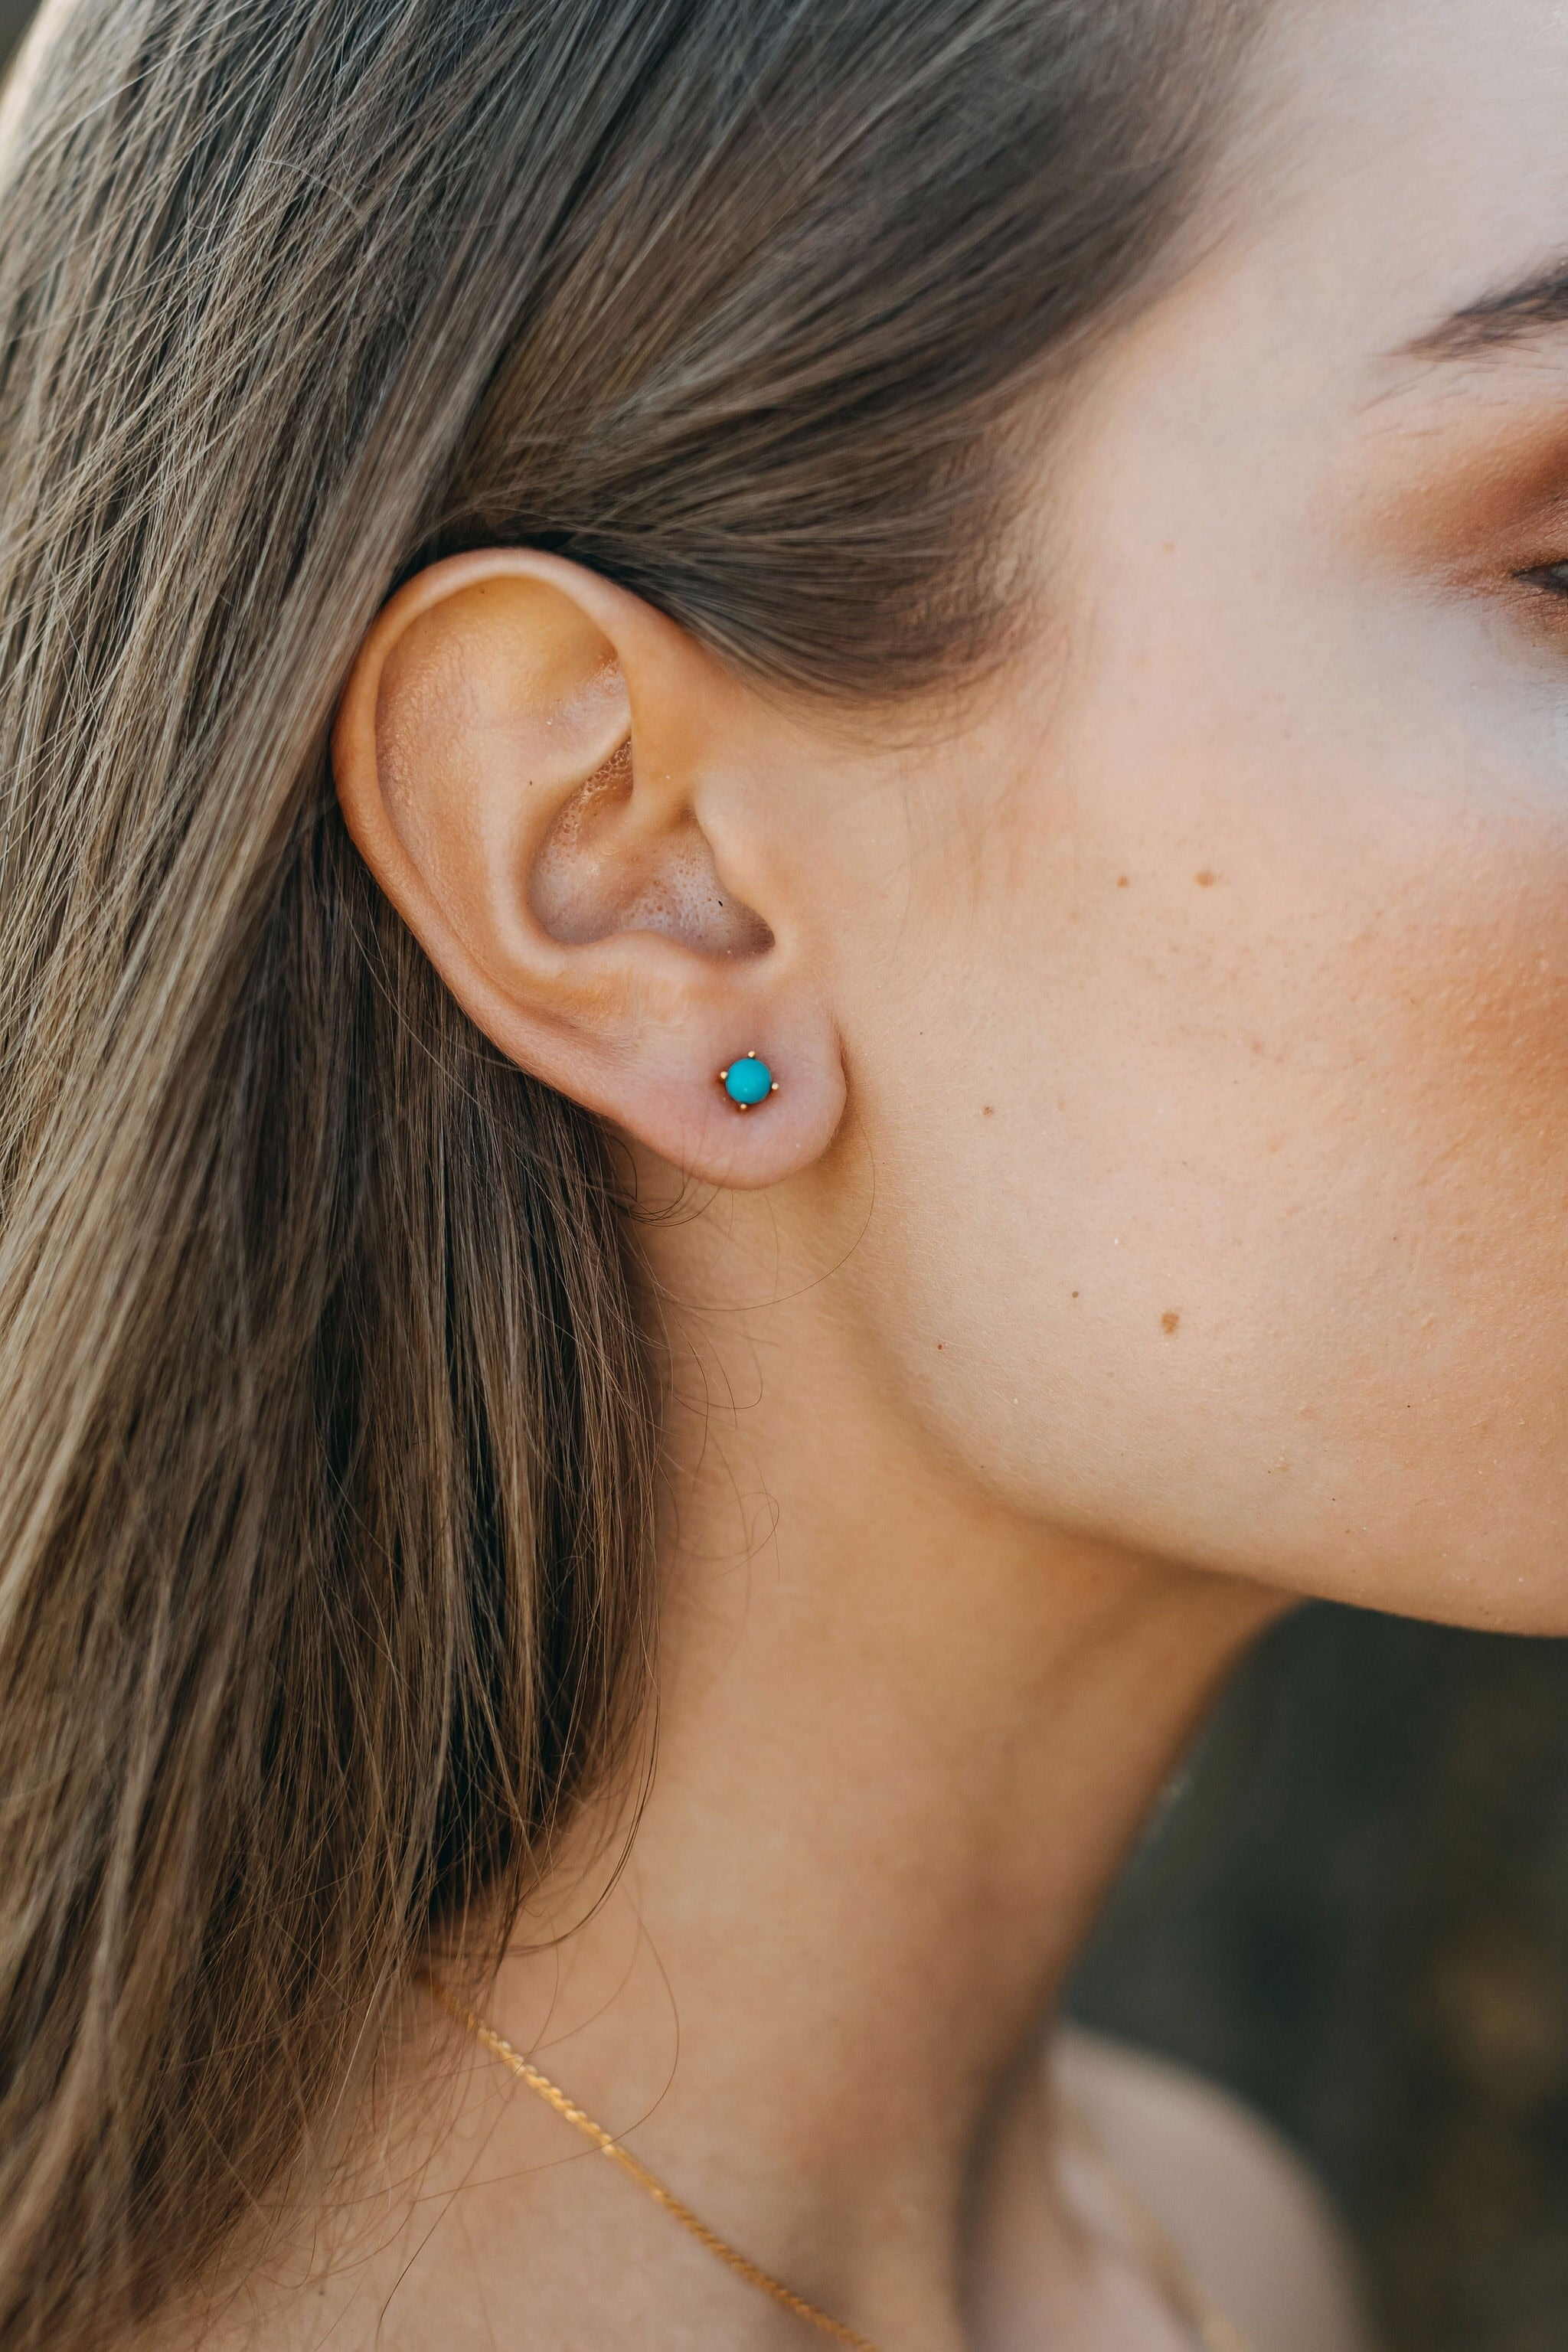 Castle rock turquoise stud earrings, sterling silver, rose gold plated